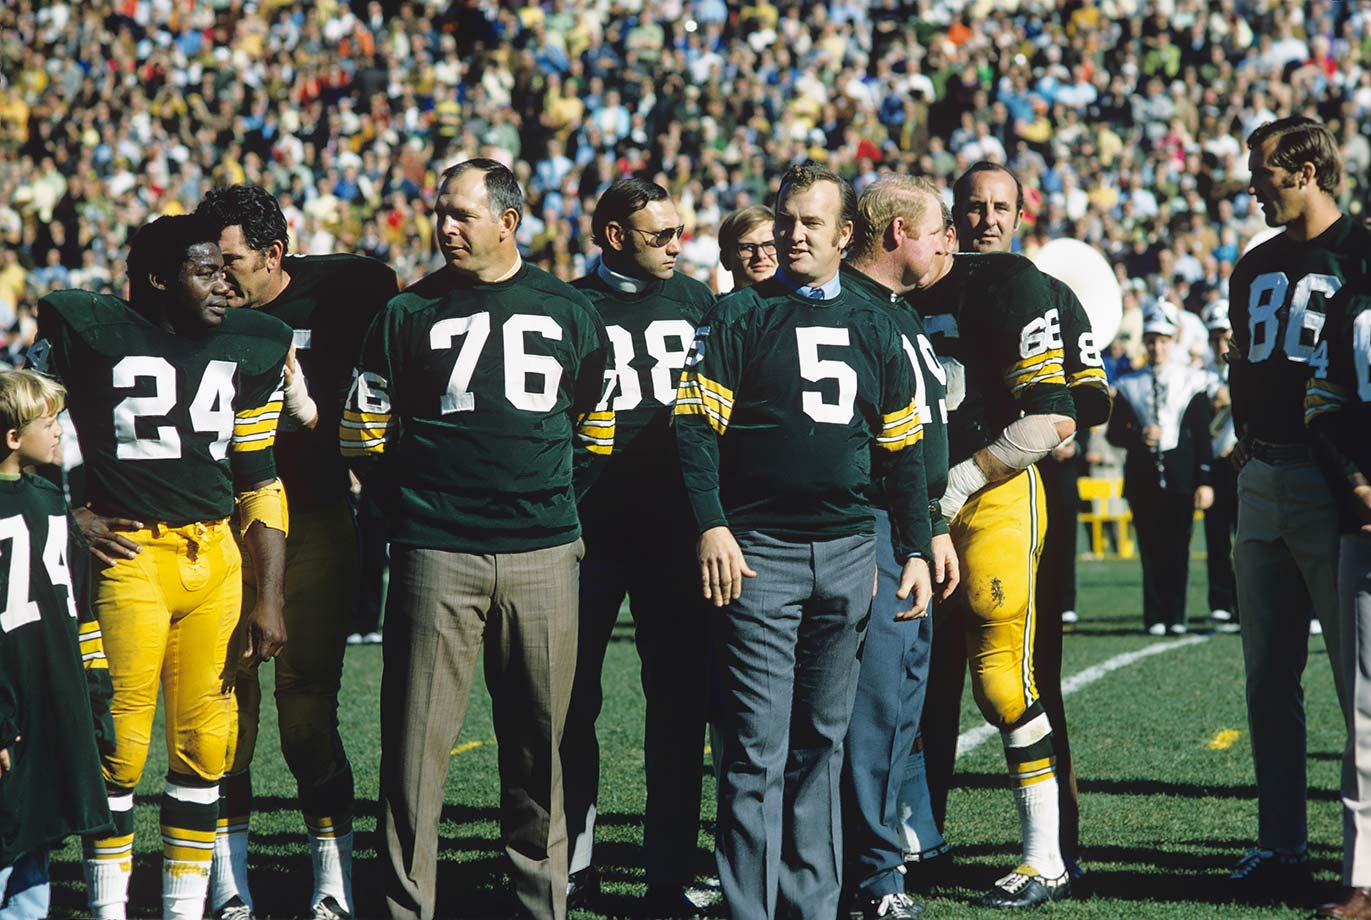 Oct. 18, 1970 — Green Bay Packers vs. Los Angeles Rams